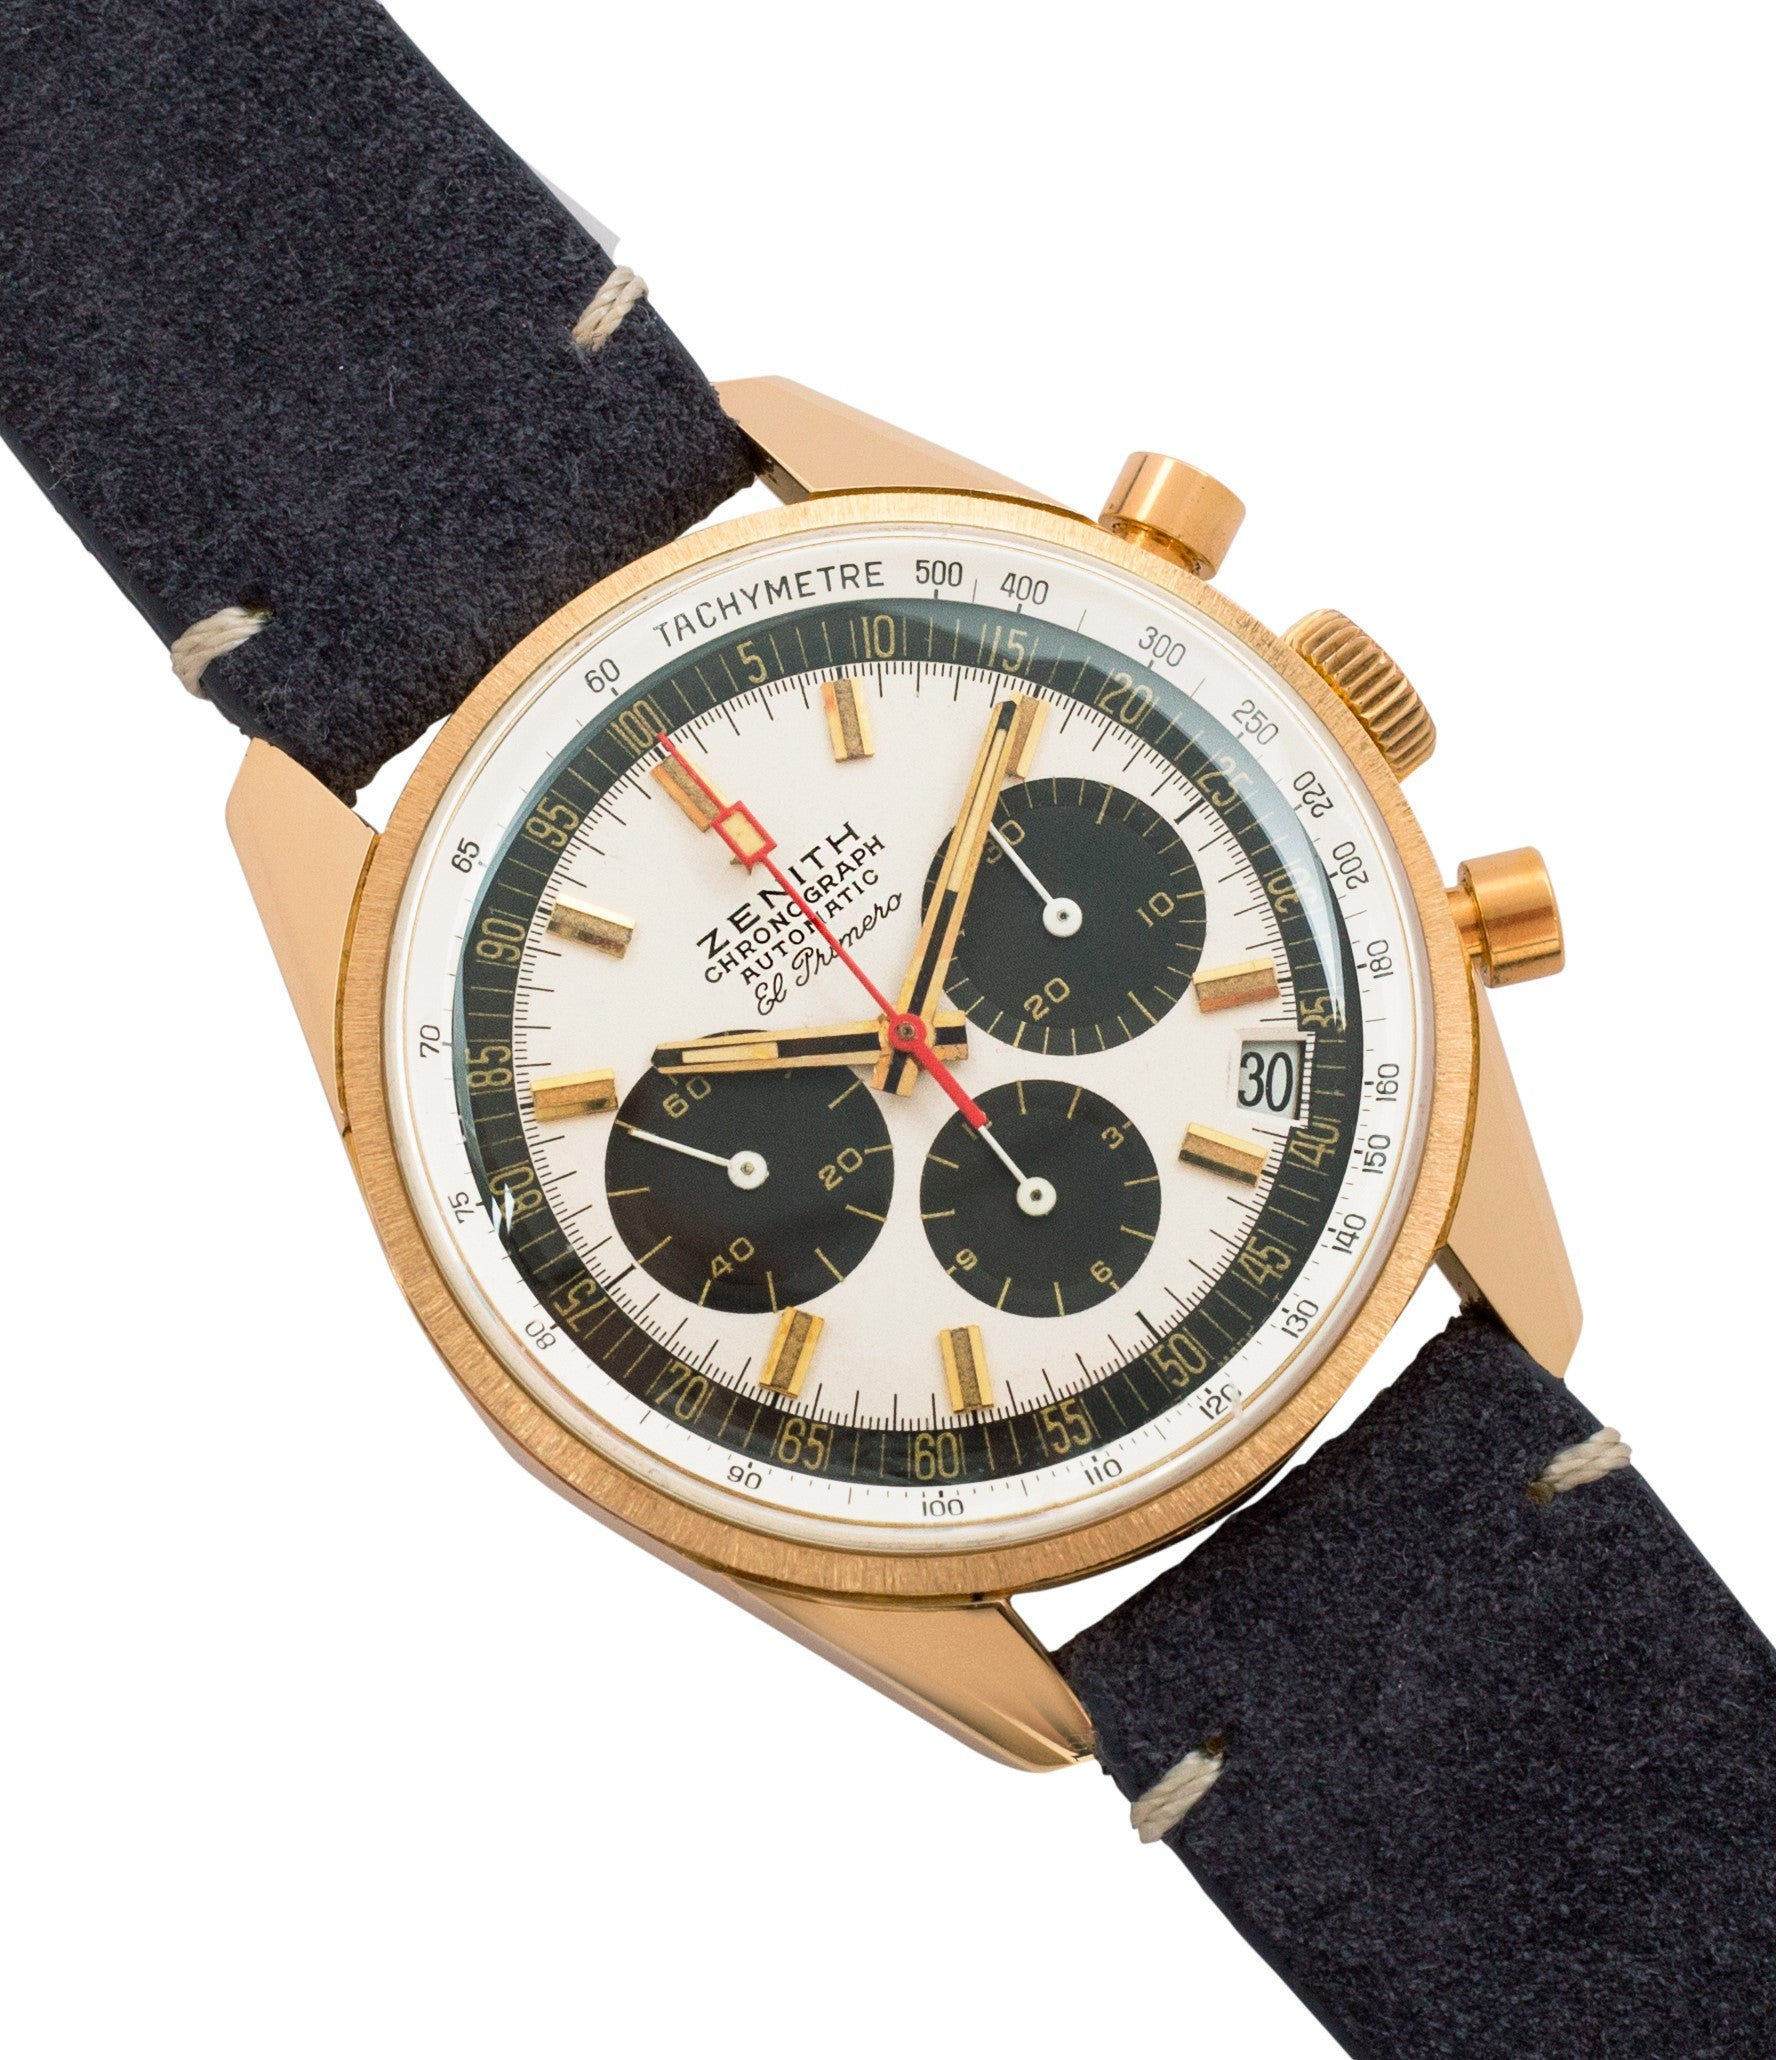 buy Zenith El Primero G381 rare yellow gold vintage chronograph date watch for sale online at A Collected Man London vintage watch specialist